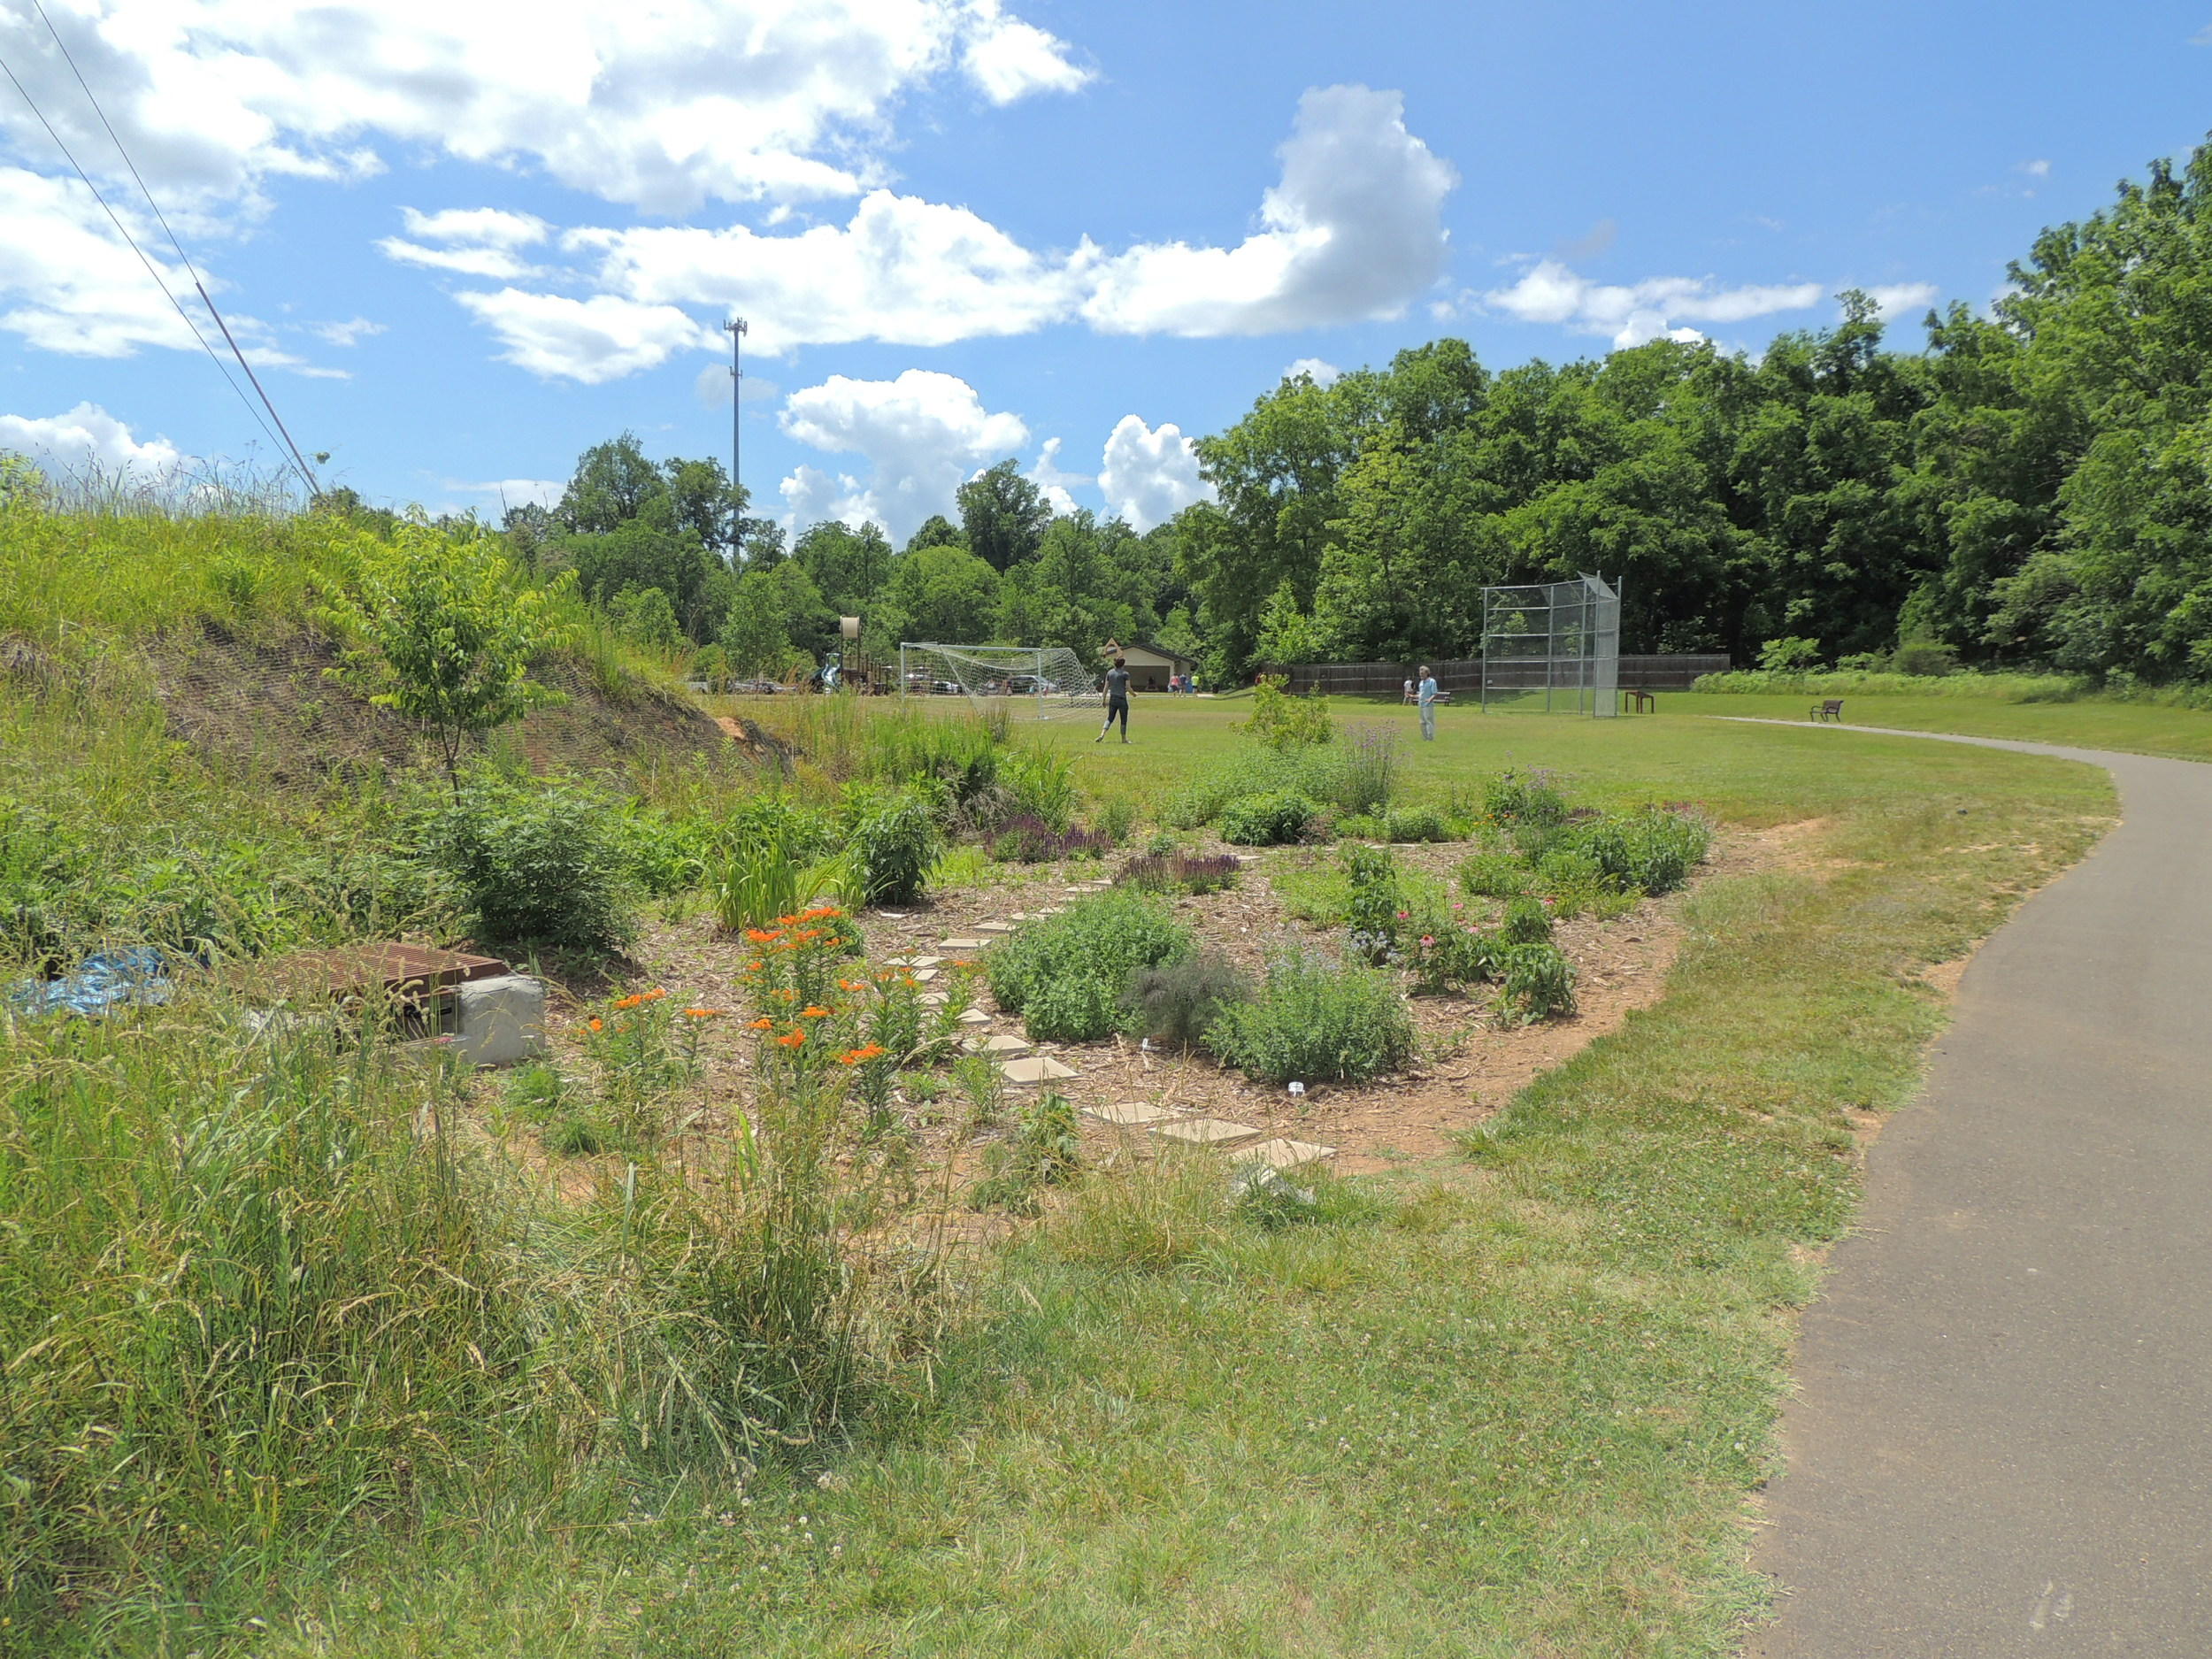 Bioretention garden at Gold Park in Hillsborough, NC